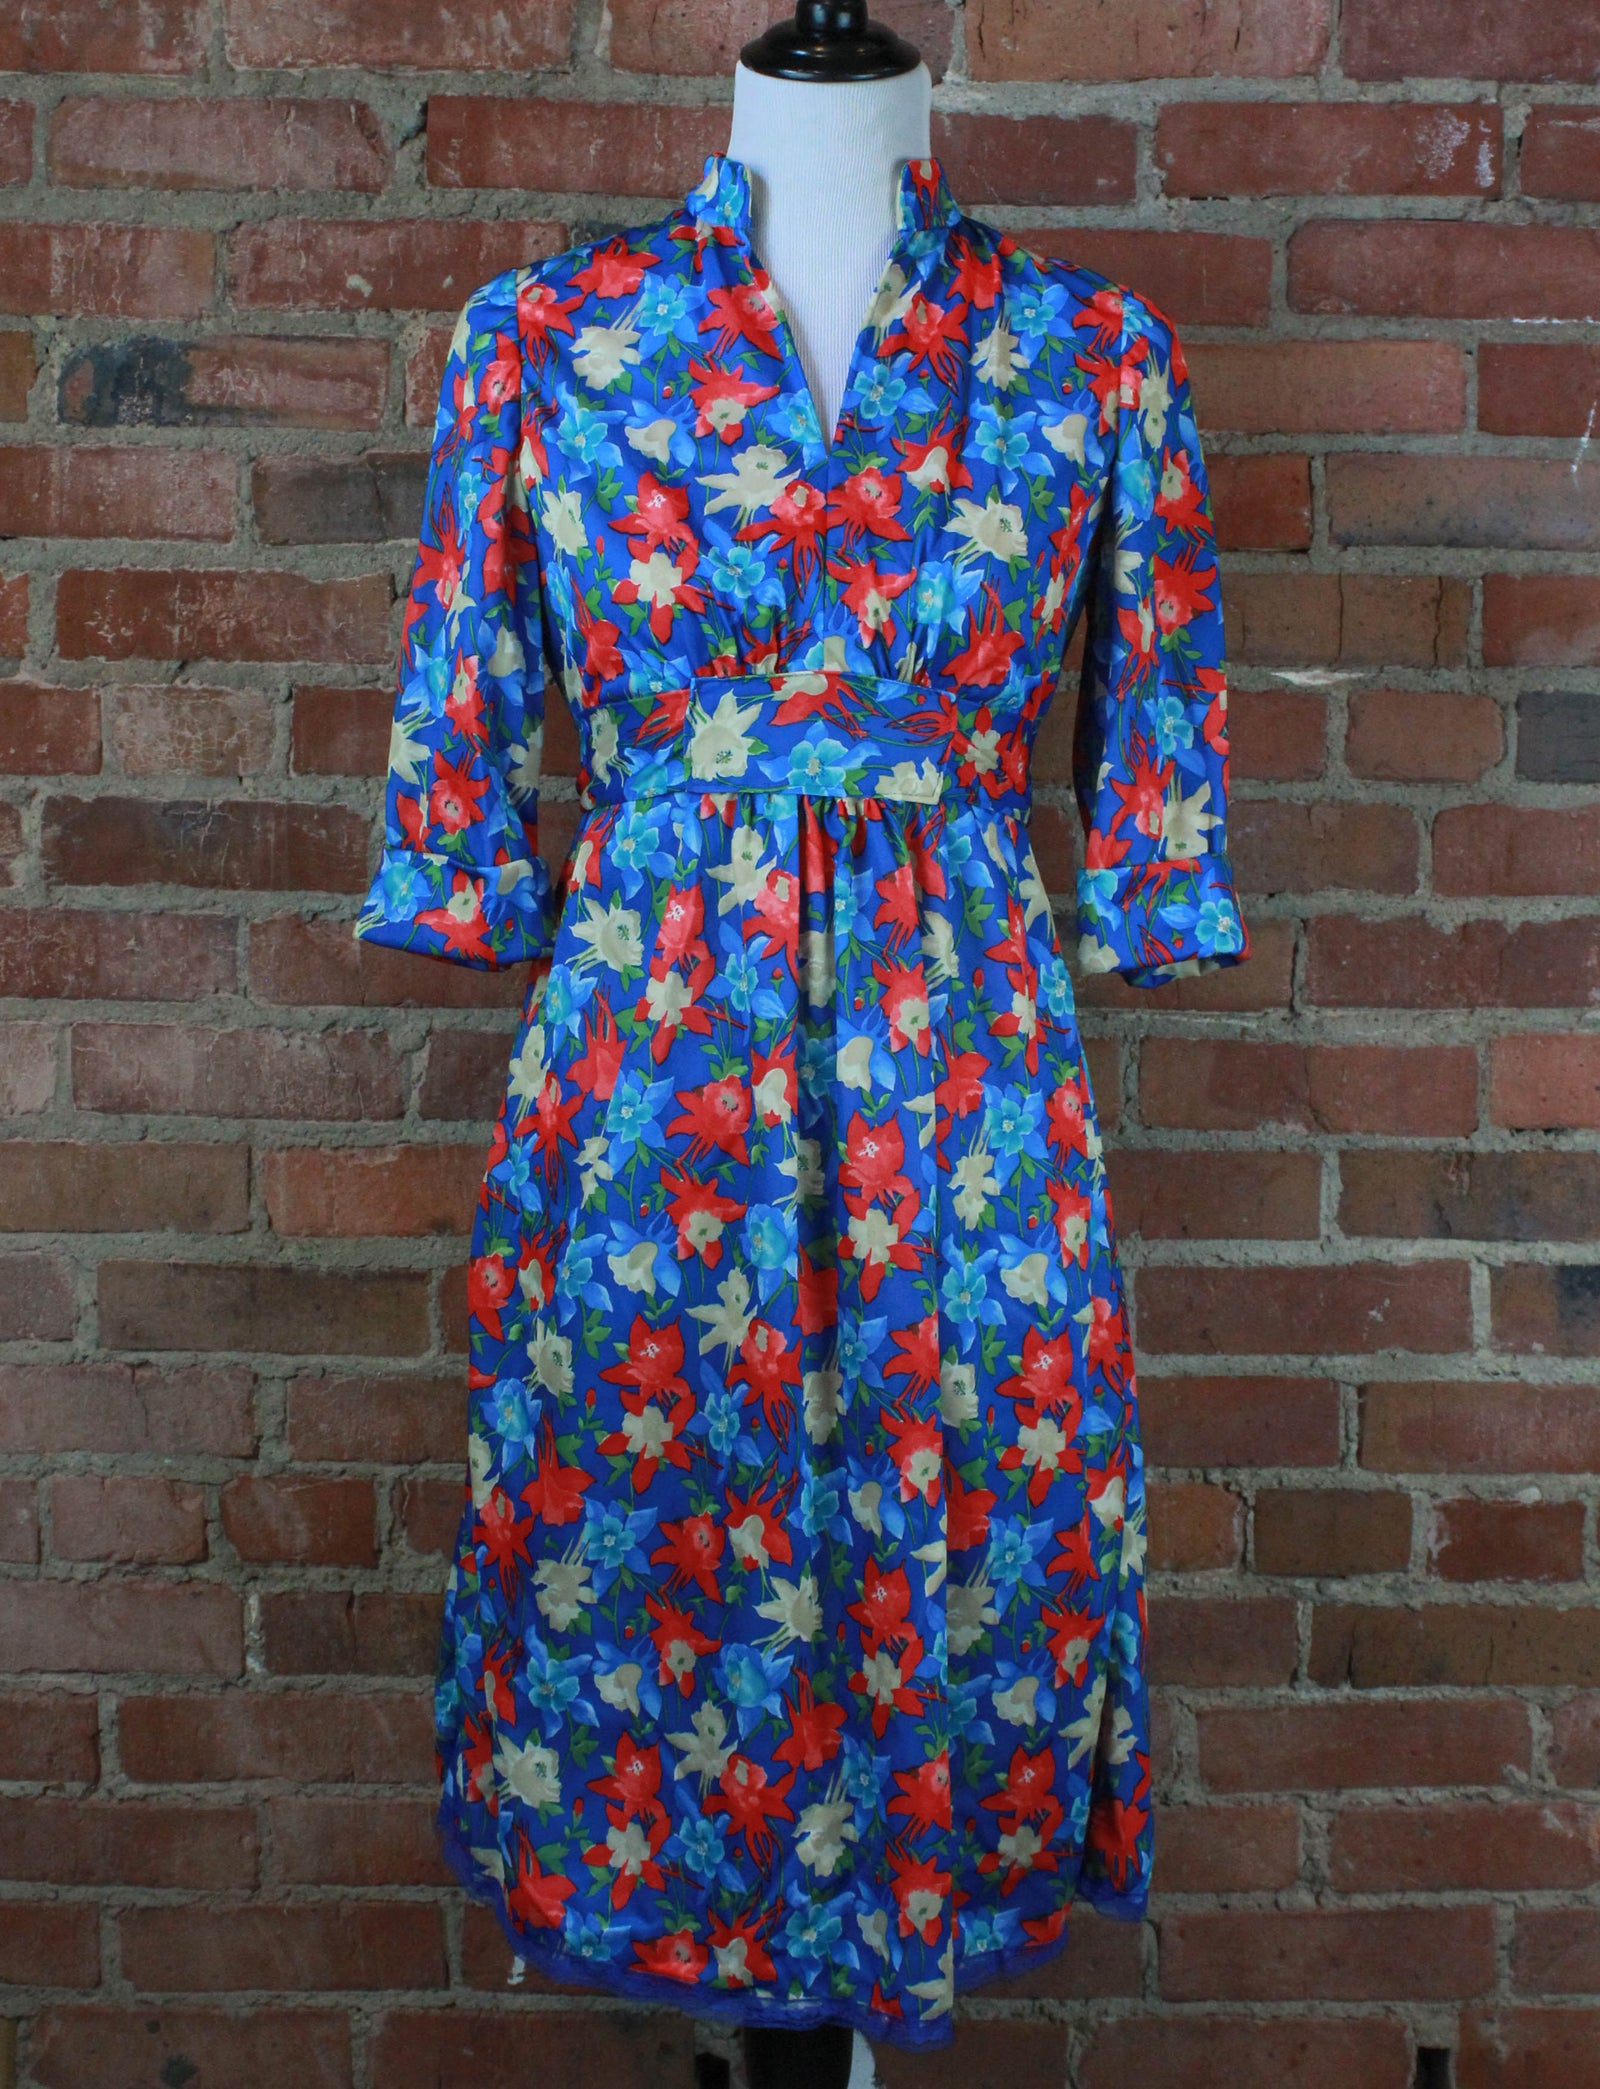 Women's Vintage 70's Blue Floral Dress - Medium